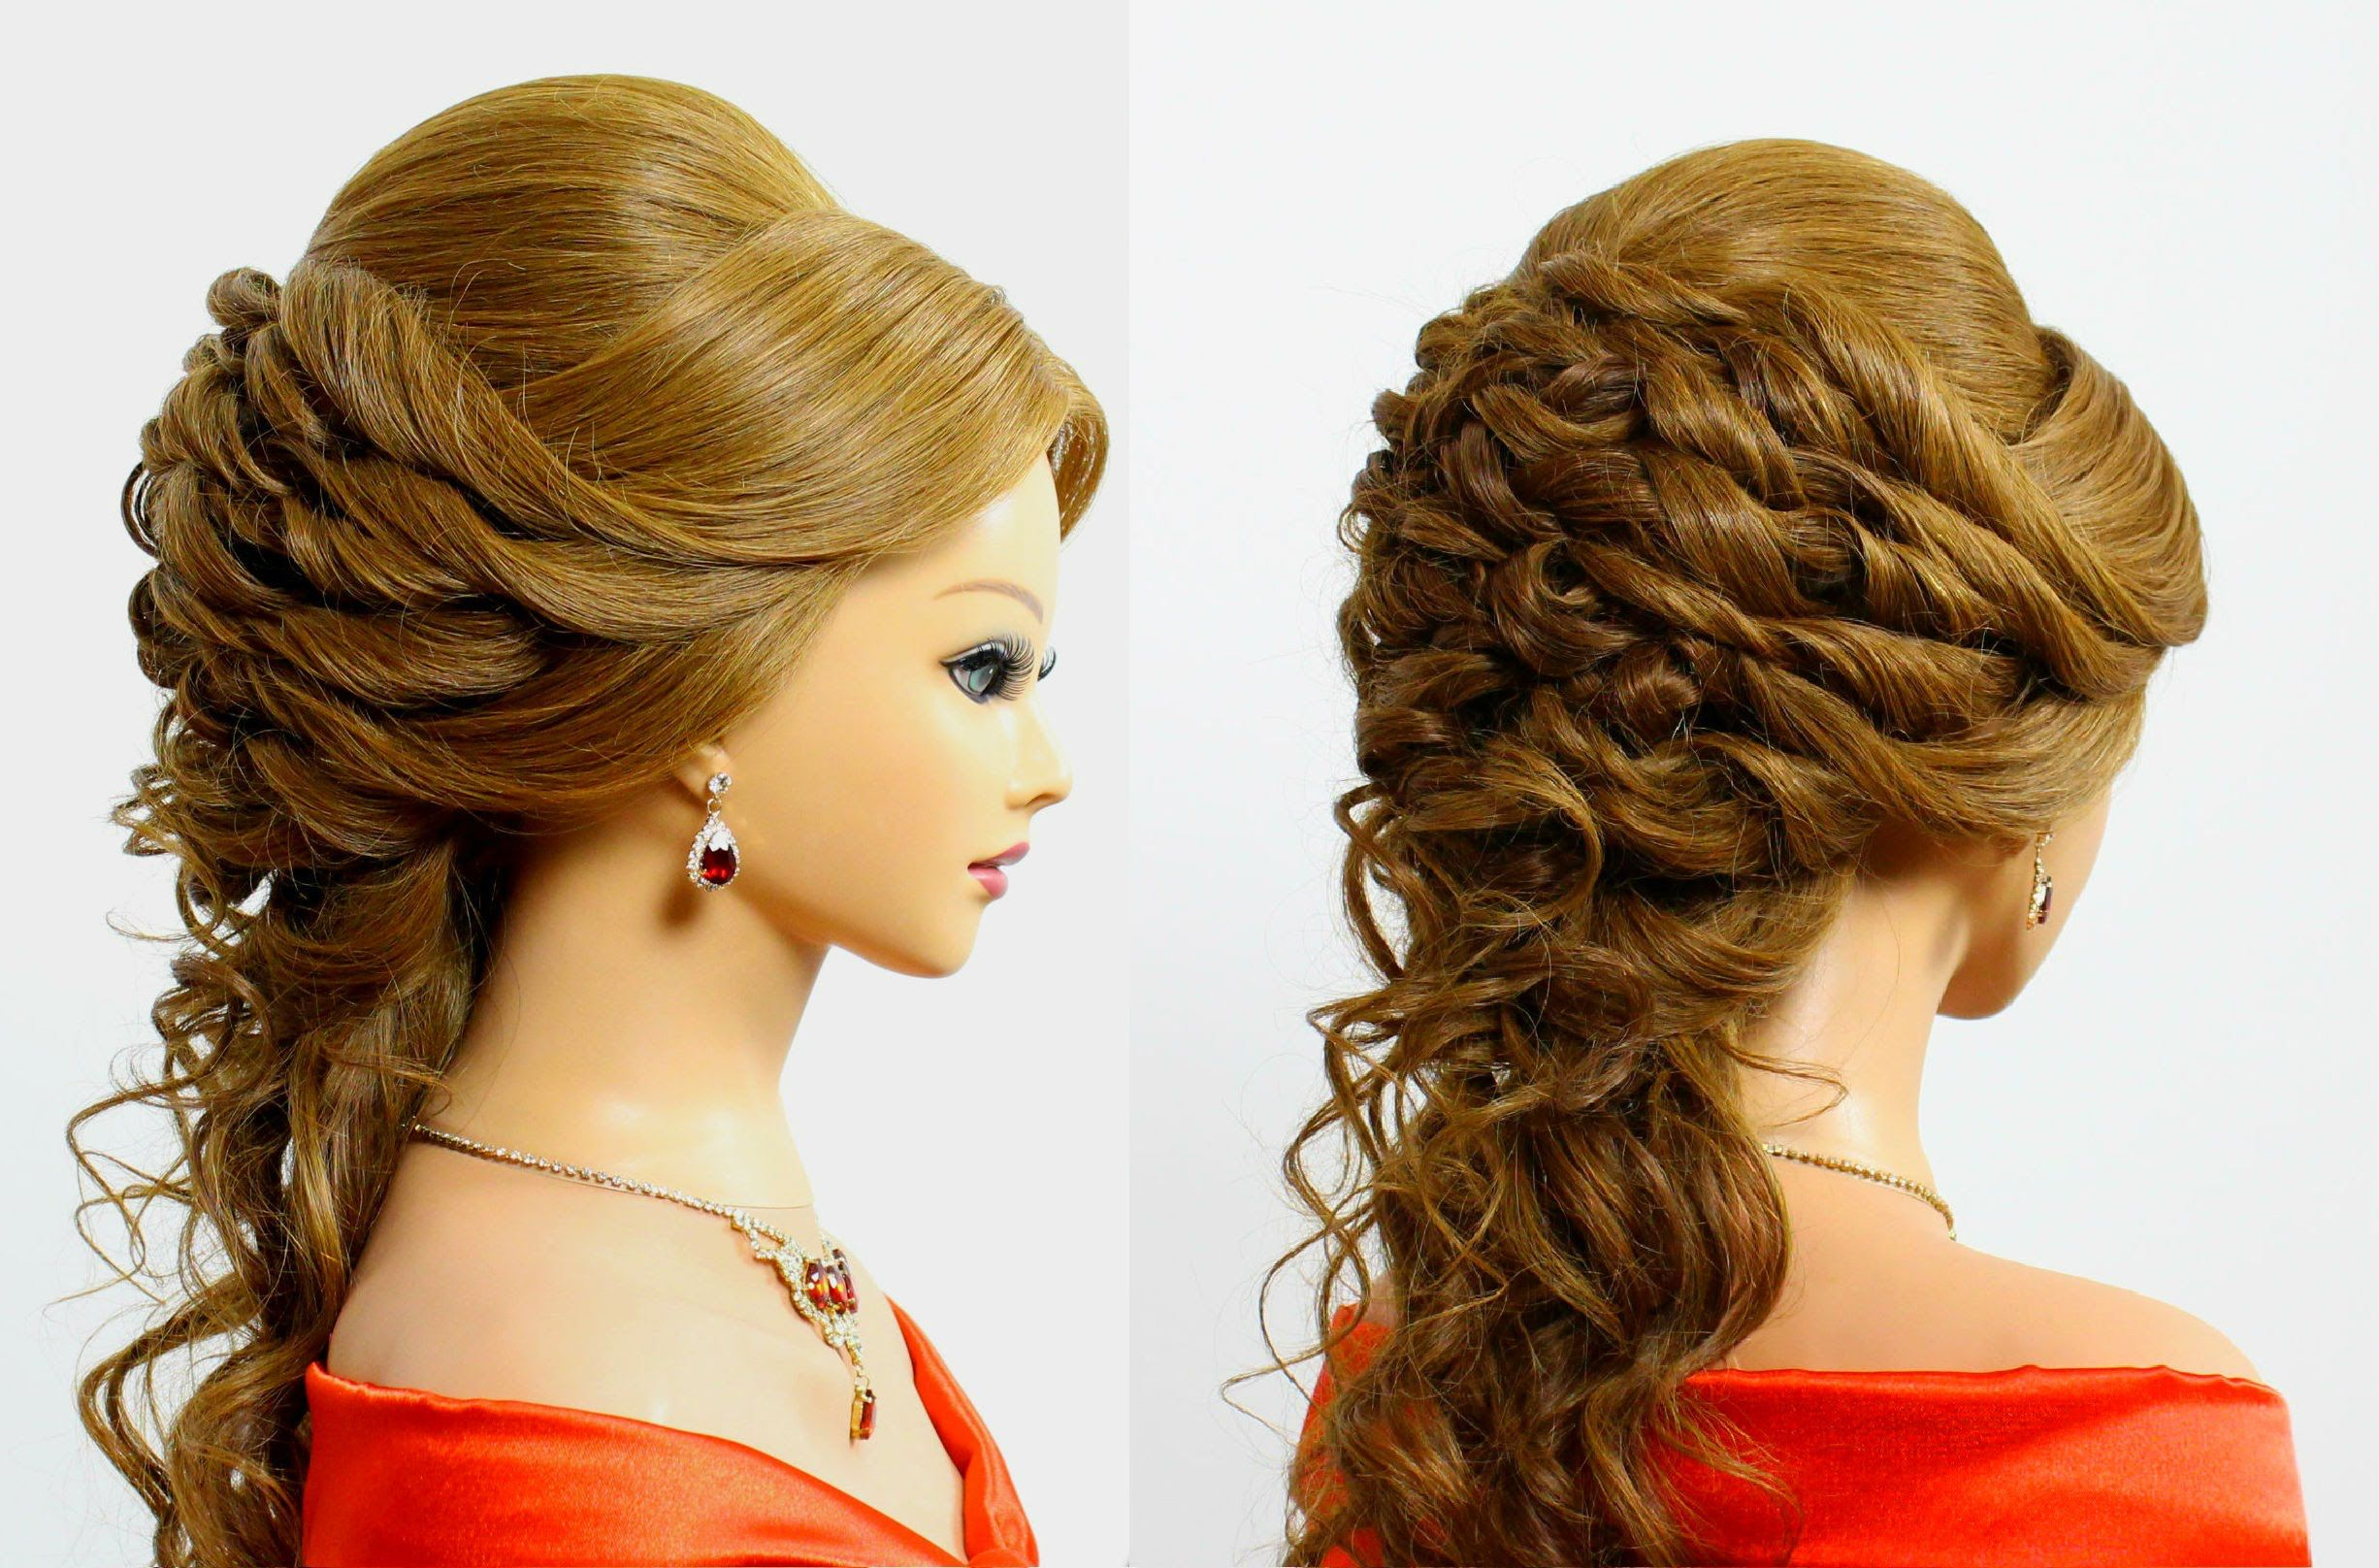 hairstyles for medium long hair. bridal wedding hairstyles. | Школа